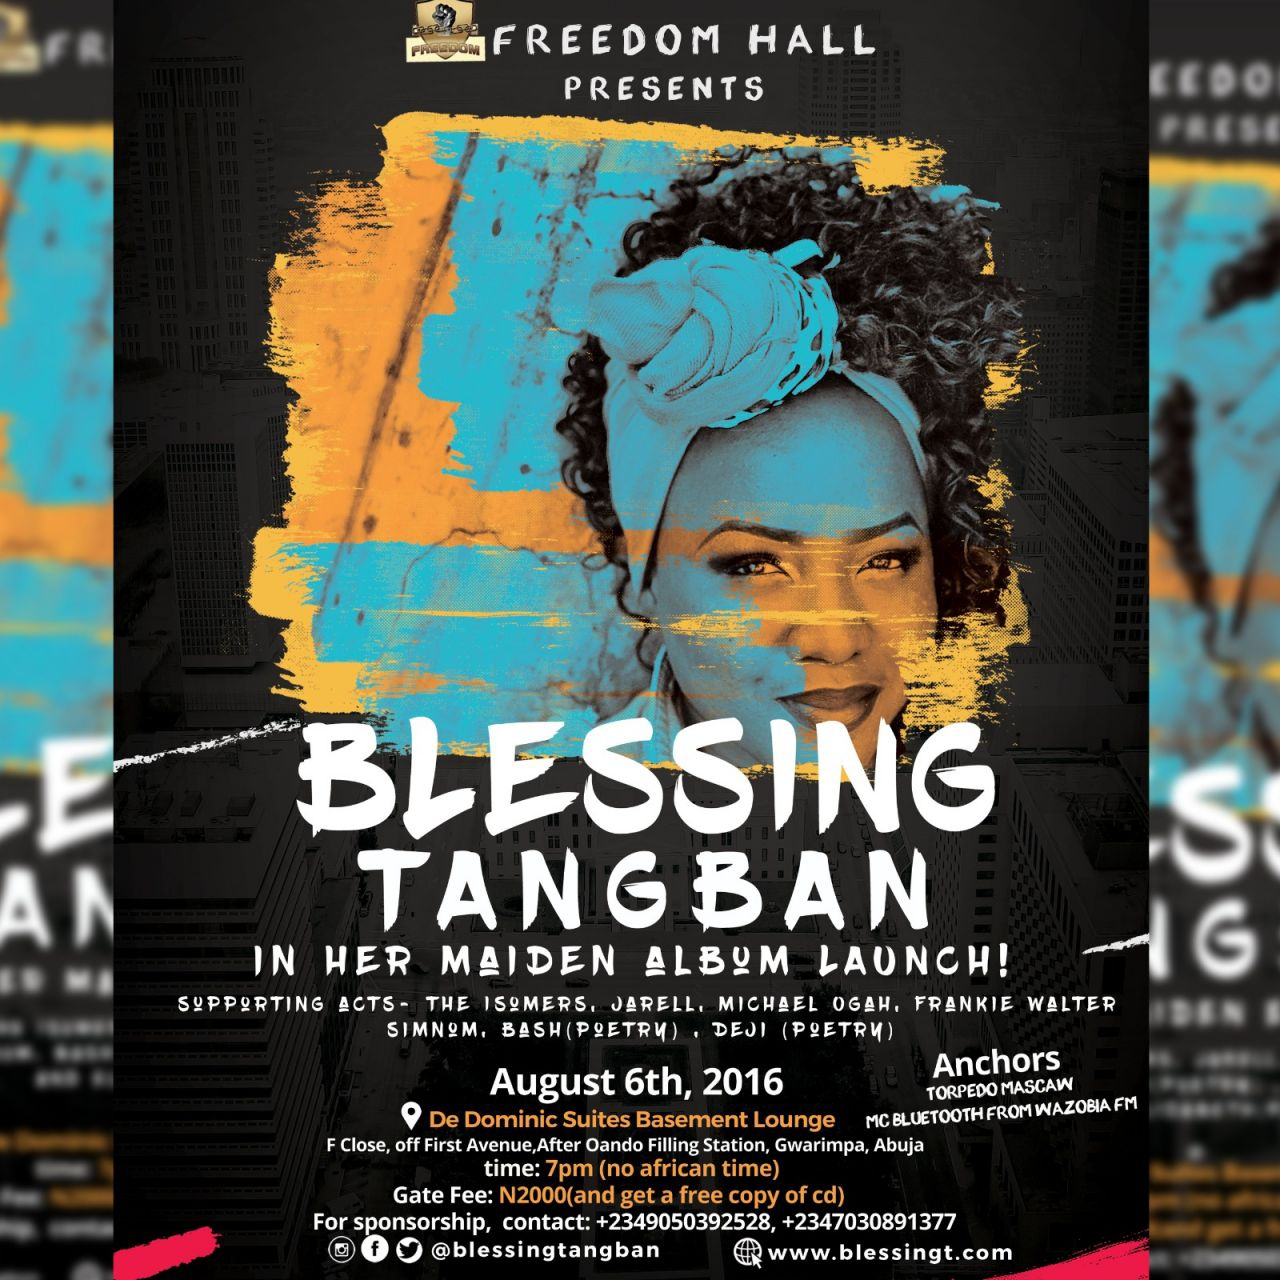 """FREEDOM HALL presents """"BLESSING TANGBAN"""" in her maiden album LAUNCH!"""